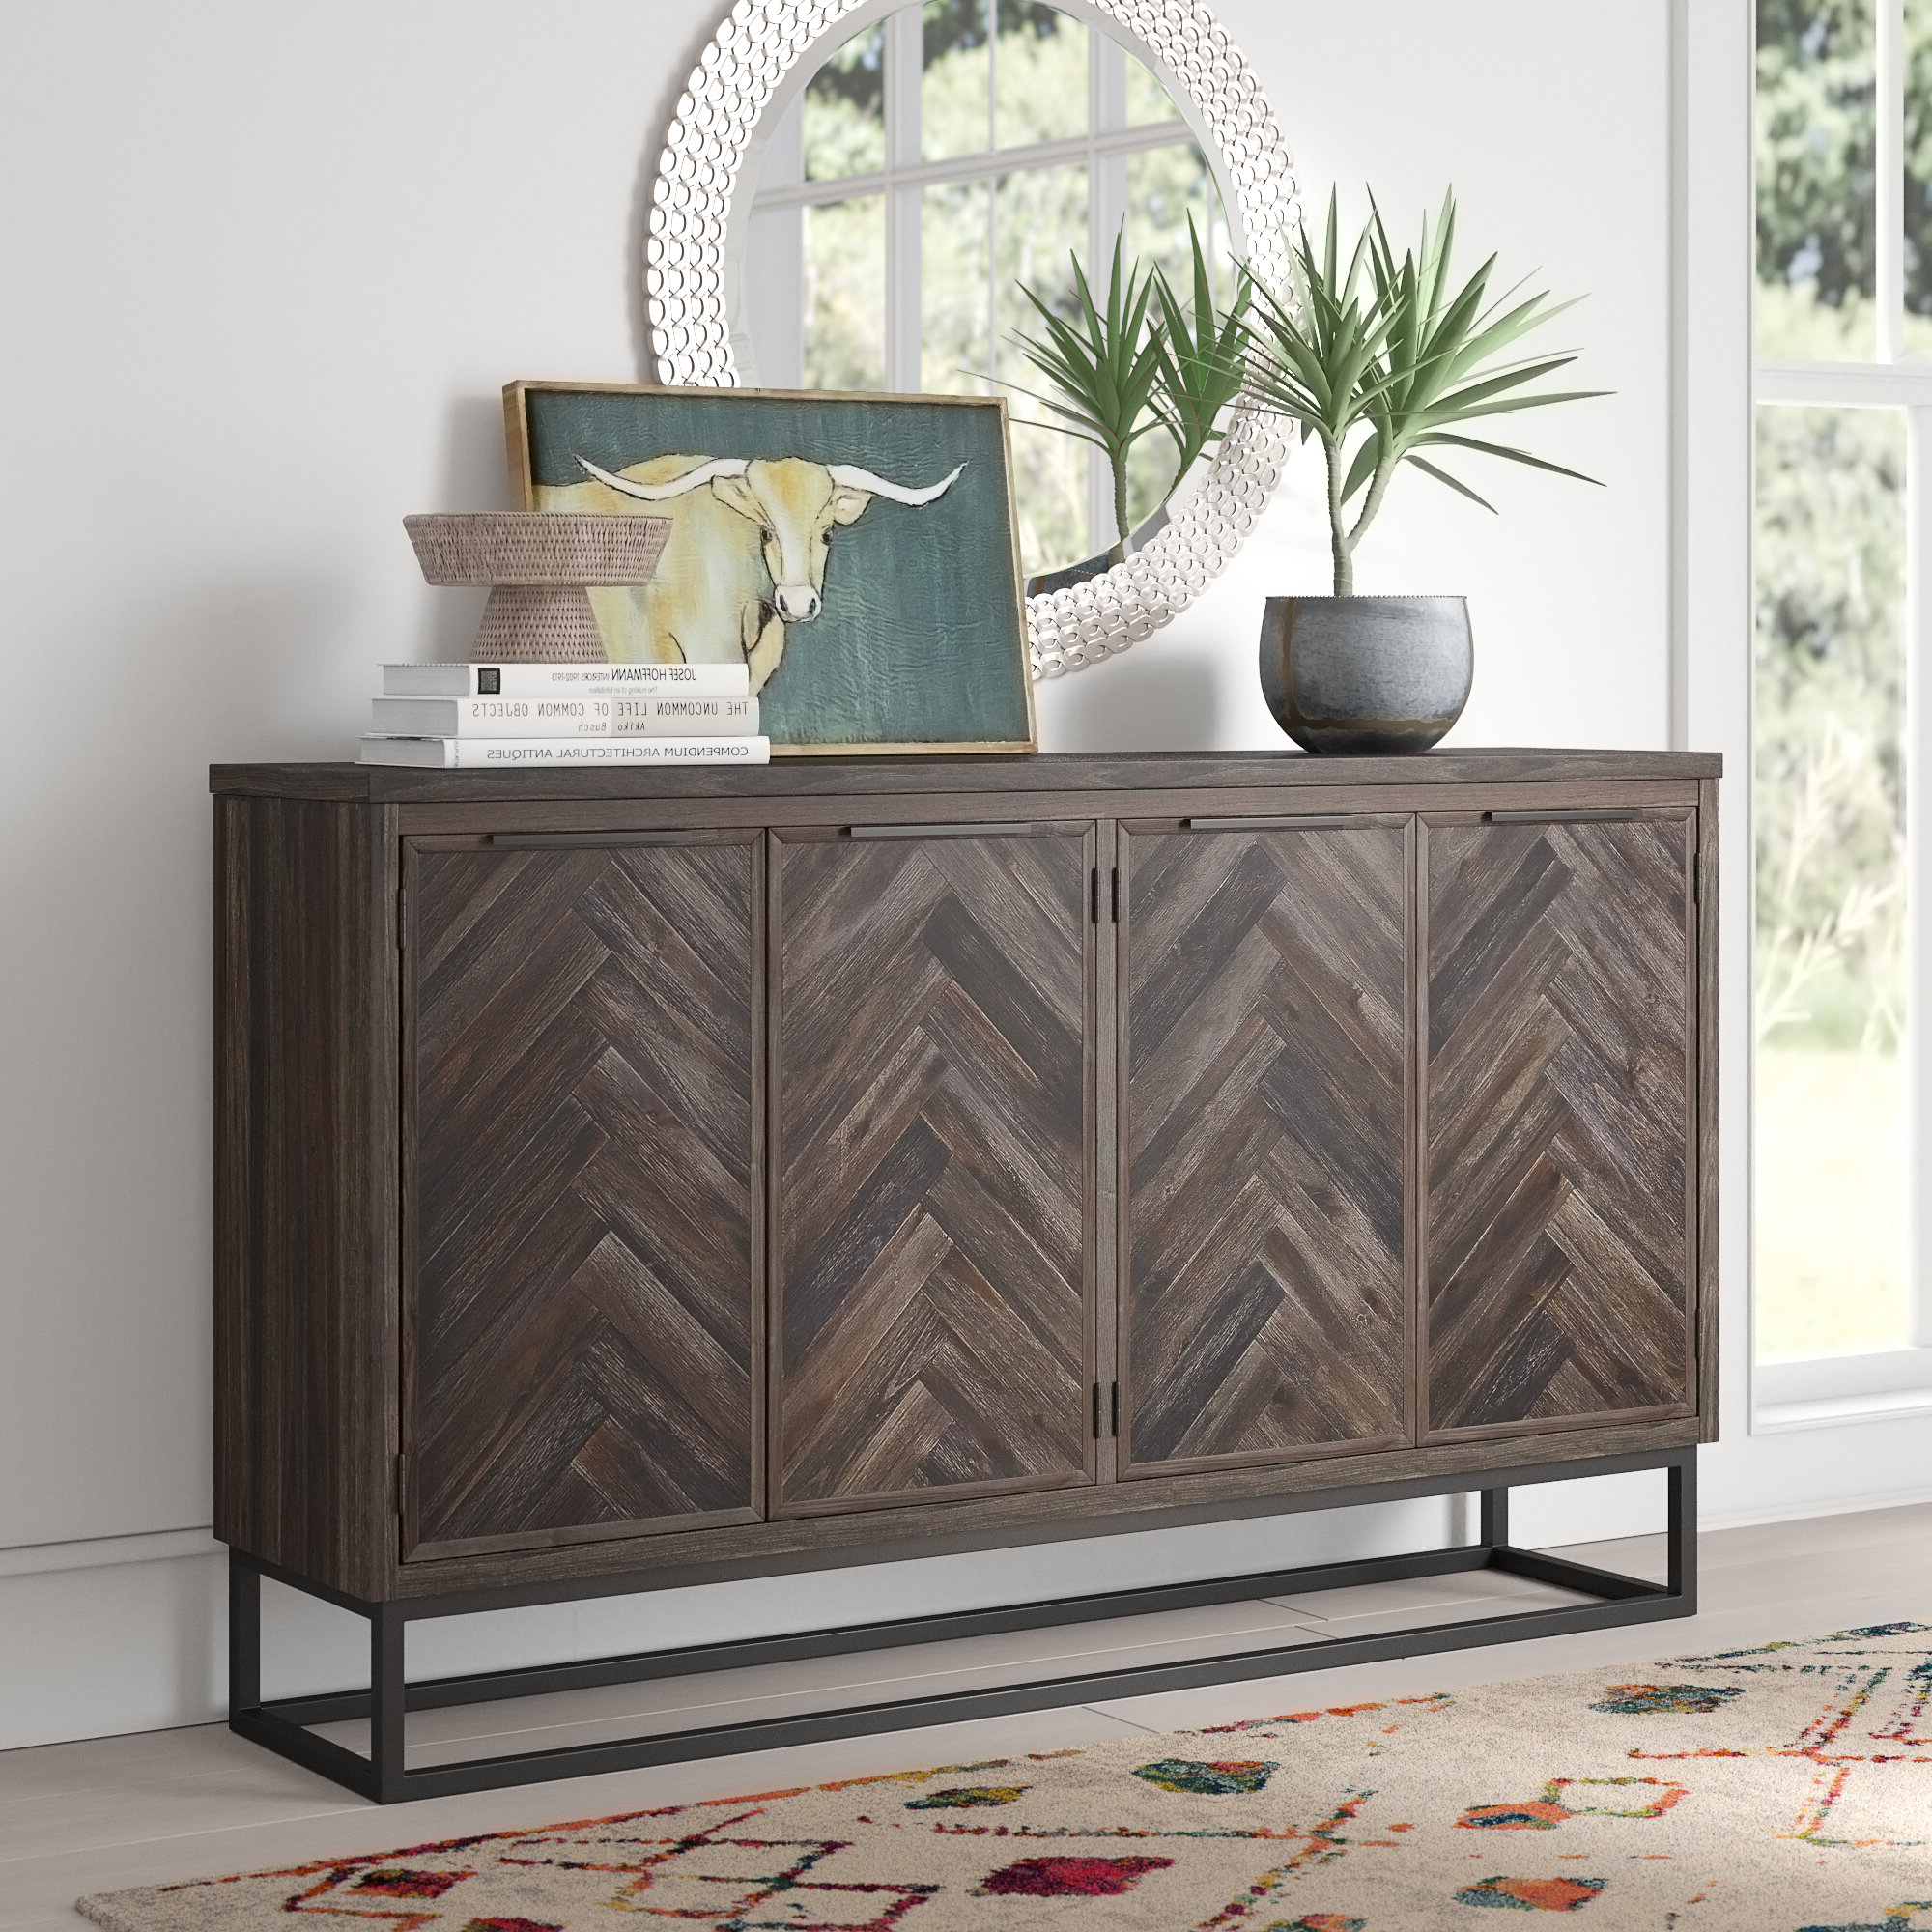 Wayfair With Most Current Upper Stanton Sideboards (Gallery 10 of 20)